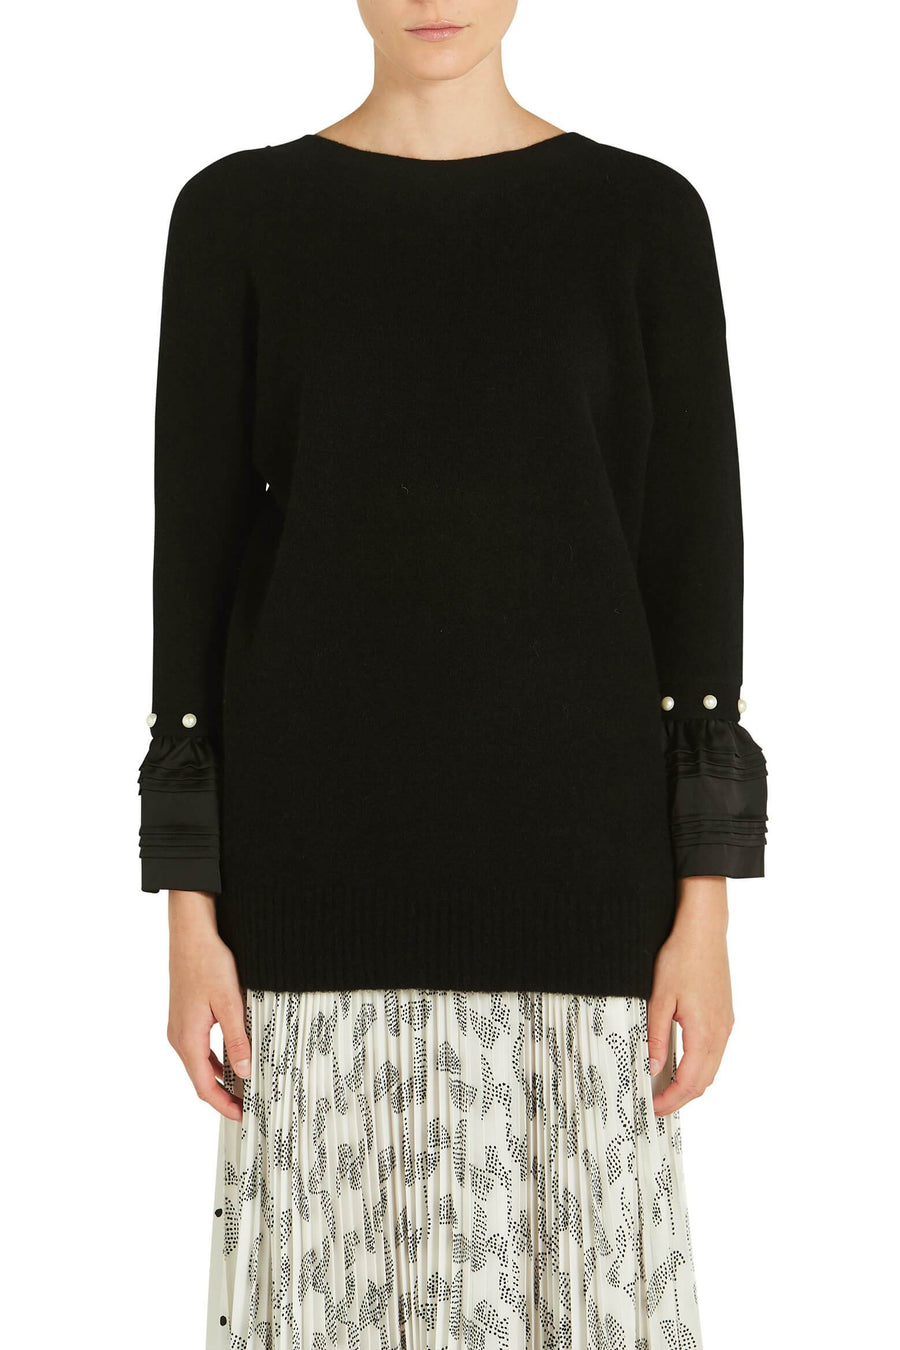 3.1 Phillip Lim Lofty V Neck Sweater in black from The New Trend